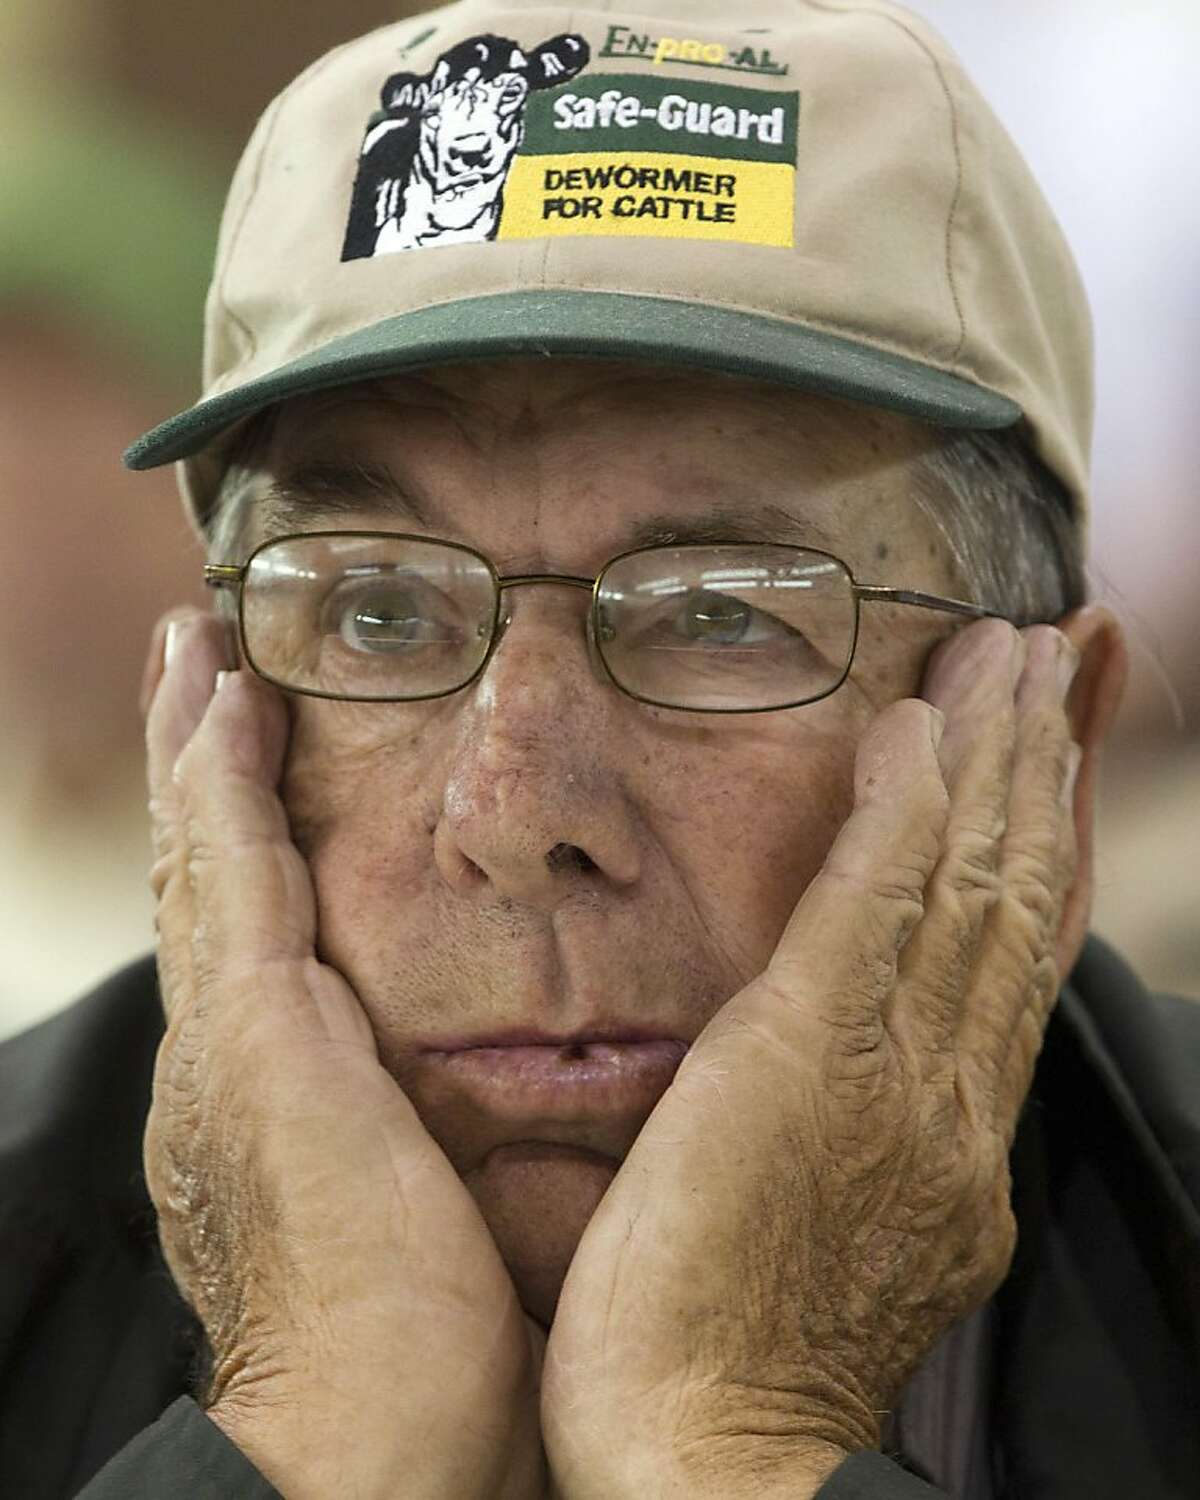 Produce farmer Jerry Marsh of Locust Fork, Ala., listens during a meeting of farmers and state officials to discuss the impact of the Alabama Immigration law on their livelihoods in Oneonta, Ala., Thursday, Oct. 20, 2011. (AP Photo/Dave Martin)